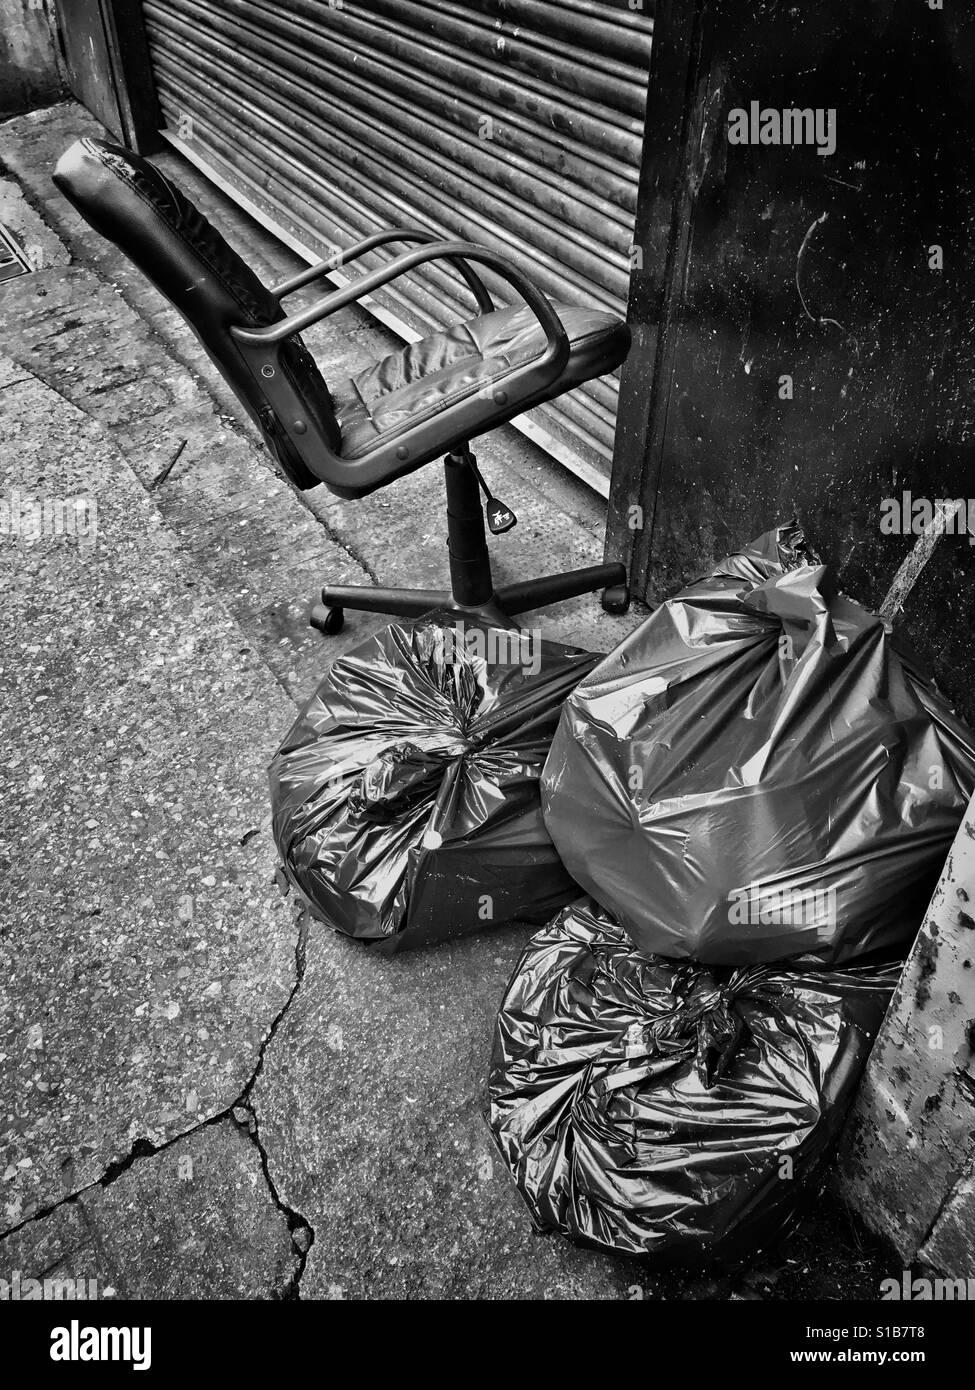 An office chair abandoned next to some rubbish sacks on a city street in the UK - Stock Image